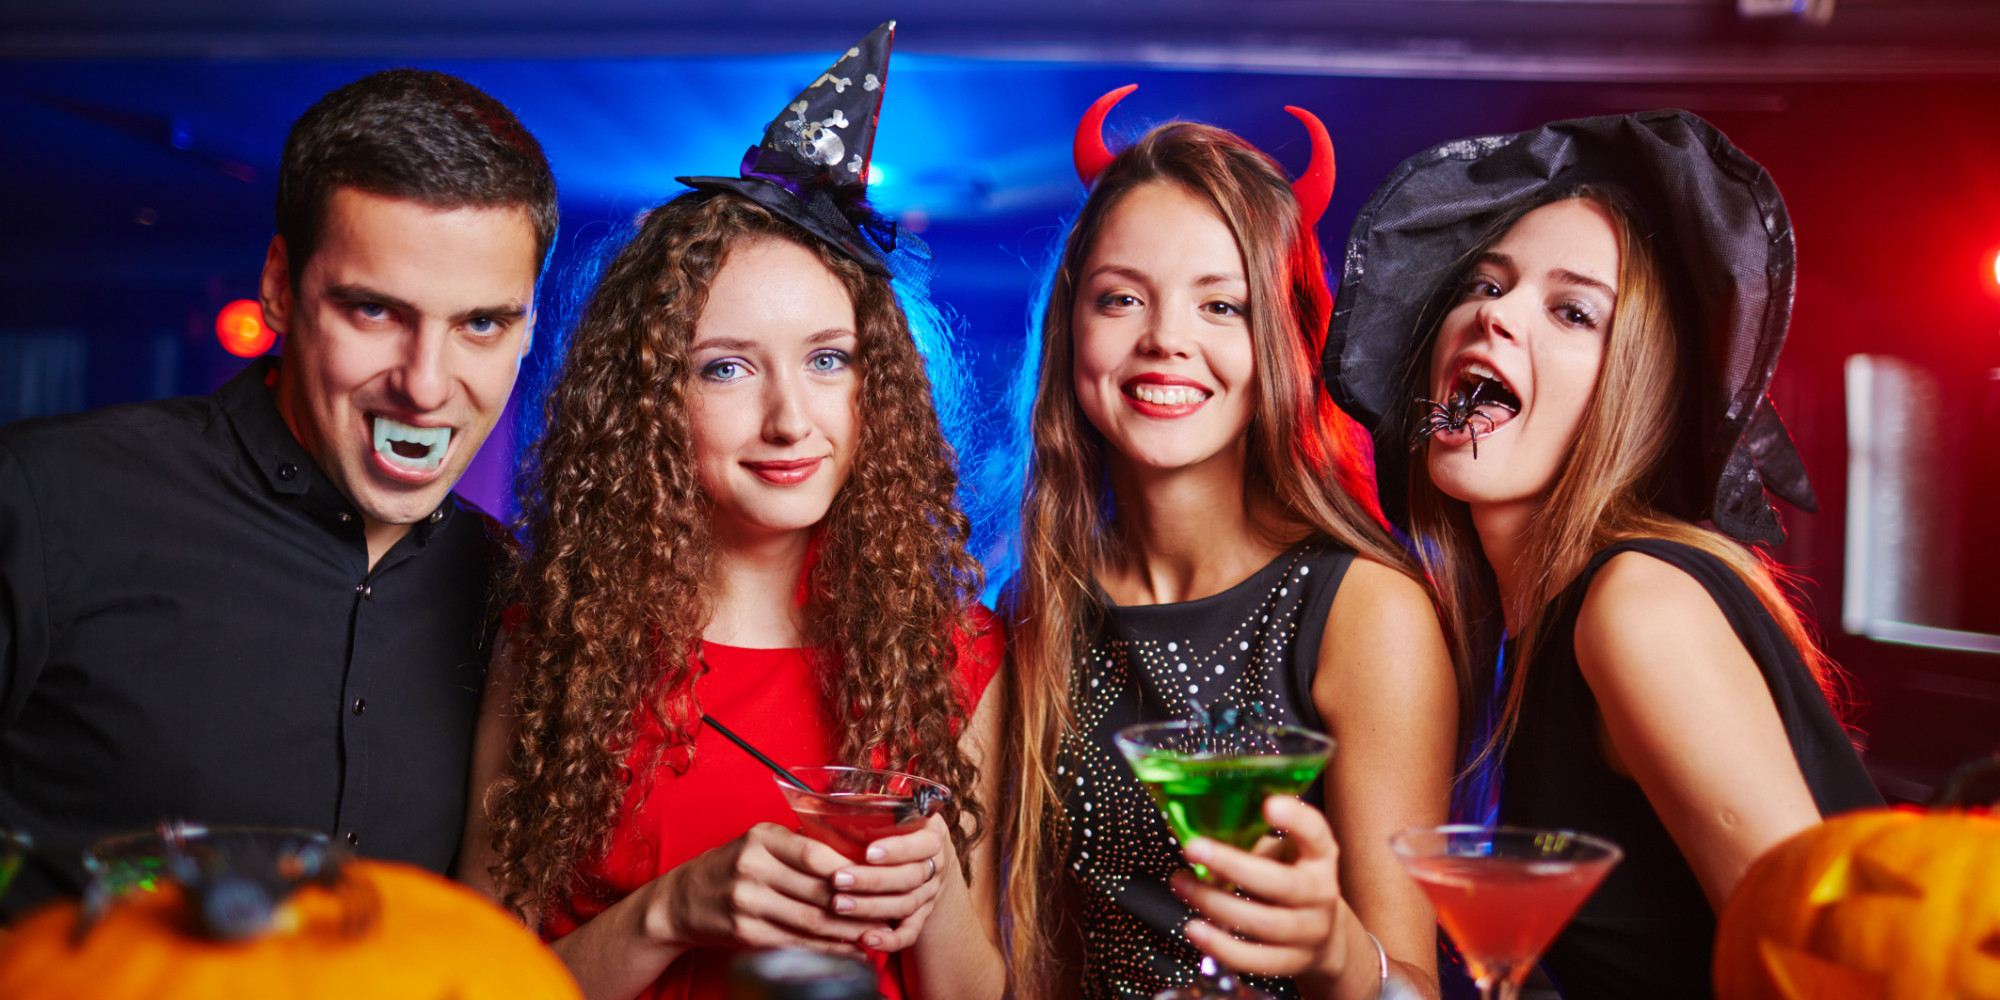 How to Have Fun While Staying Safe at a College Halloween Party ...